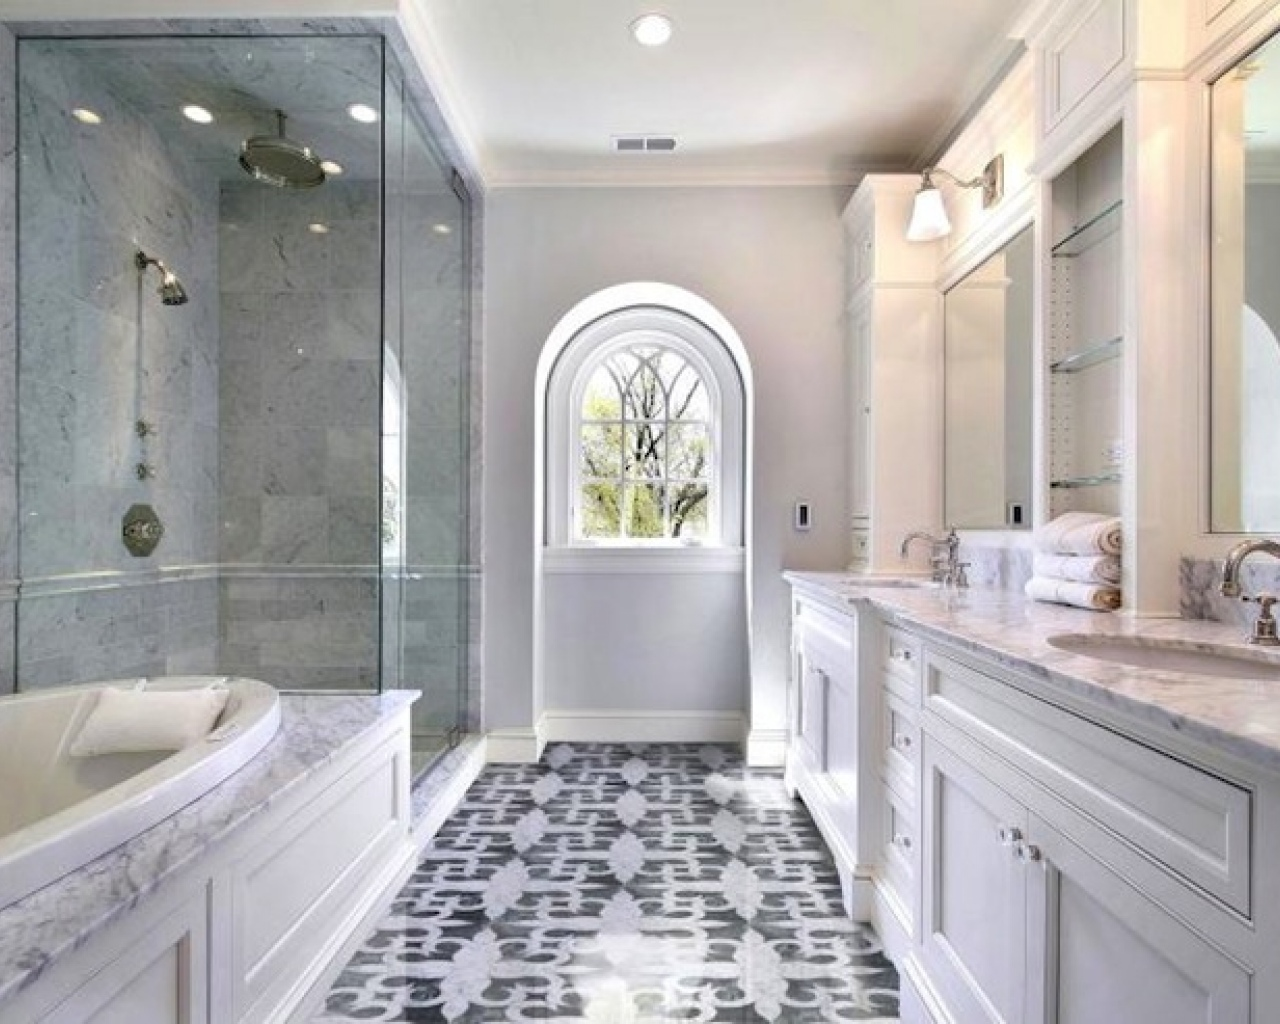 25 amazing italian bathroom tile designs ideas and pictures for Bathroom tile ideas